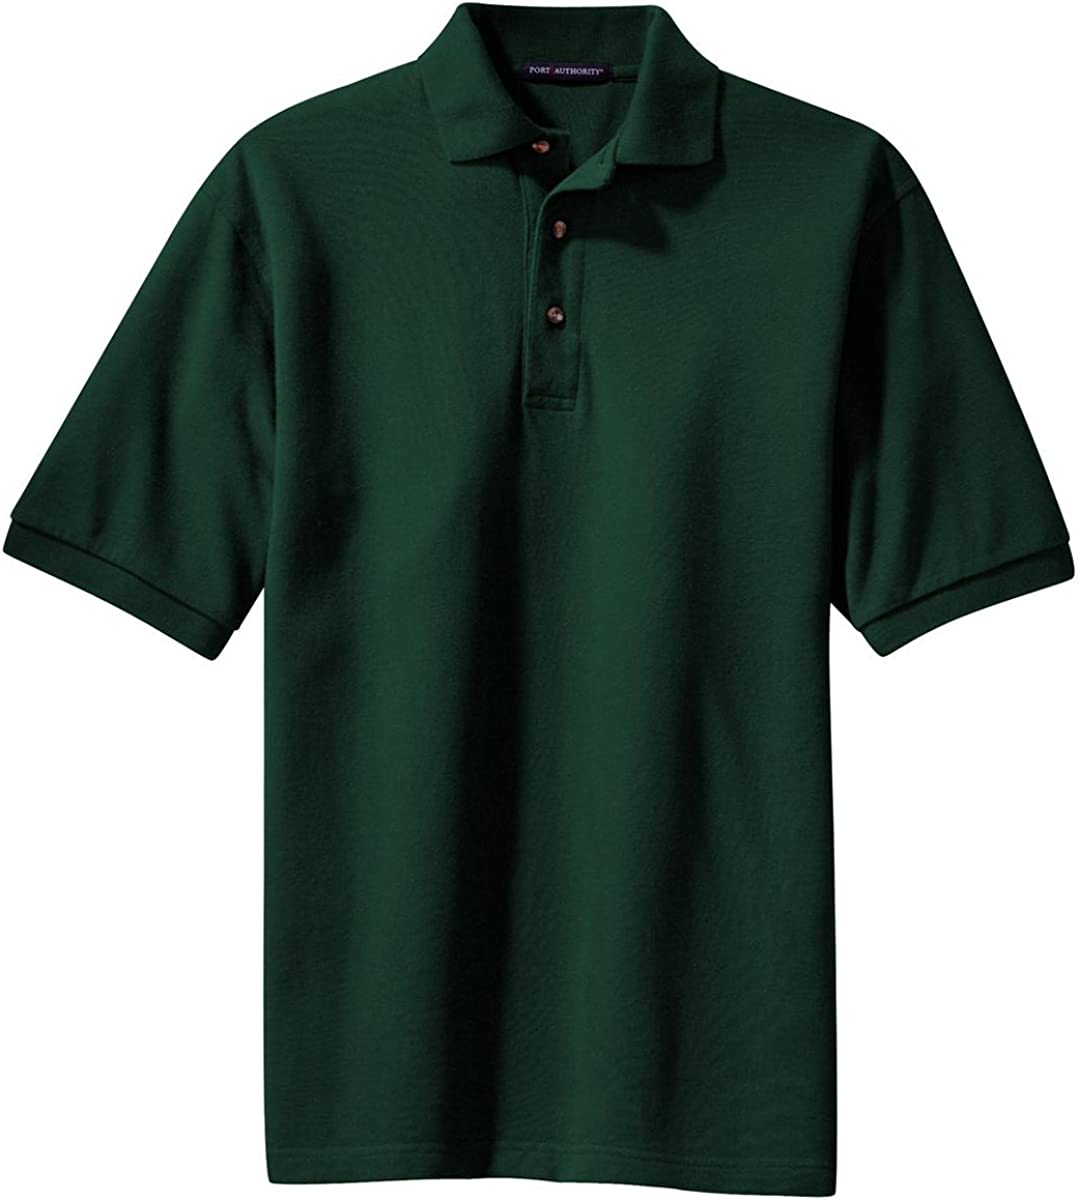 TLK420 Port Authority Tall Pique Knit Polo